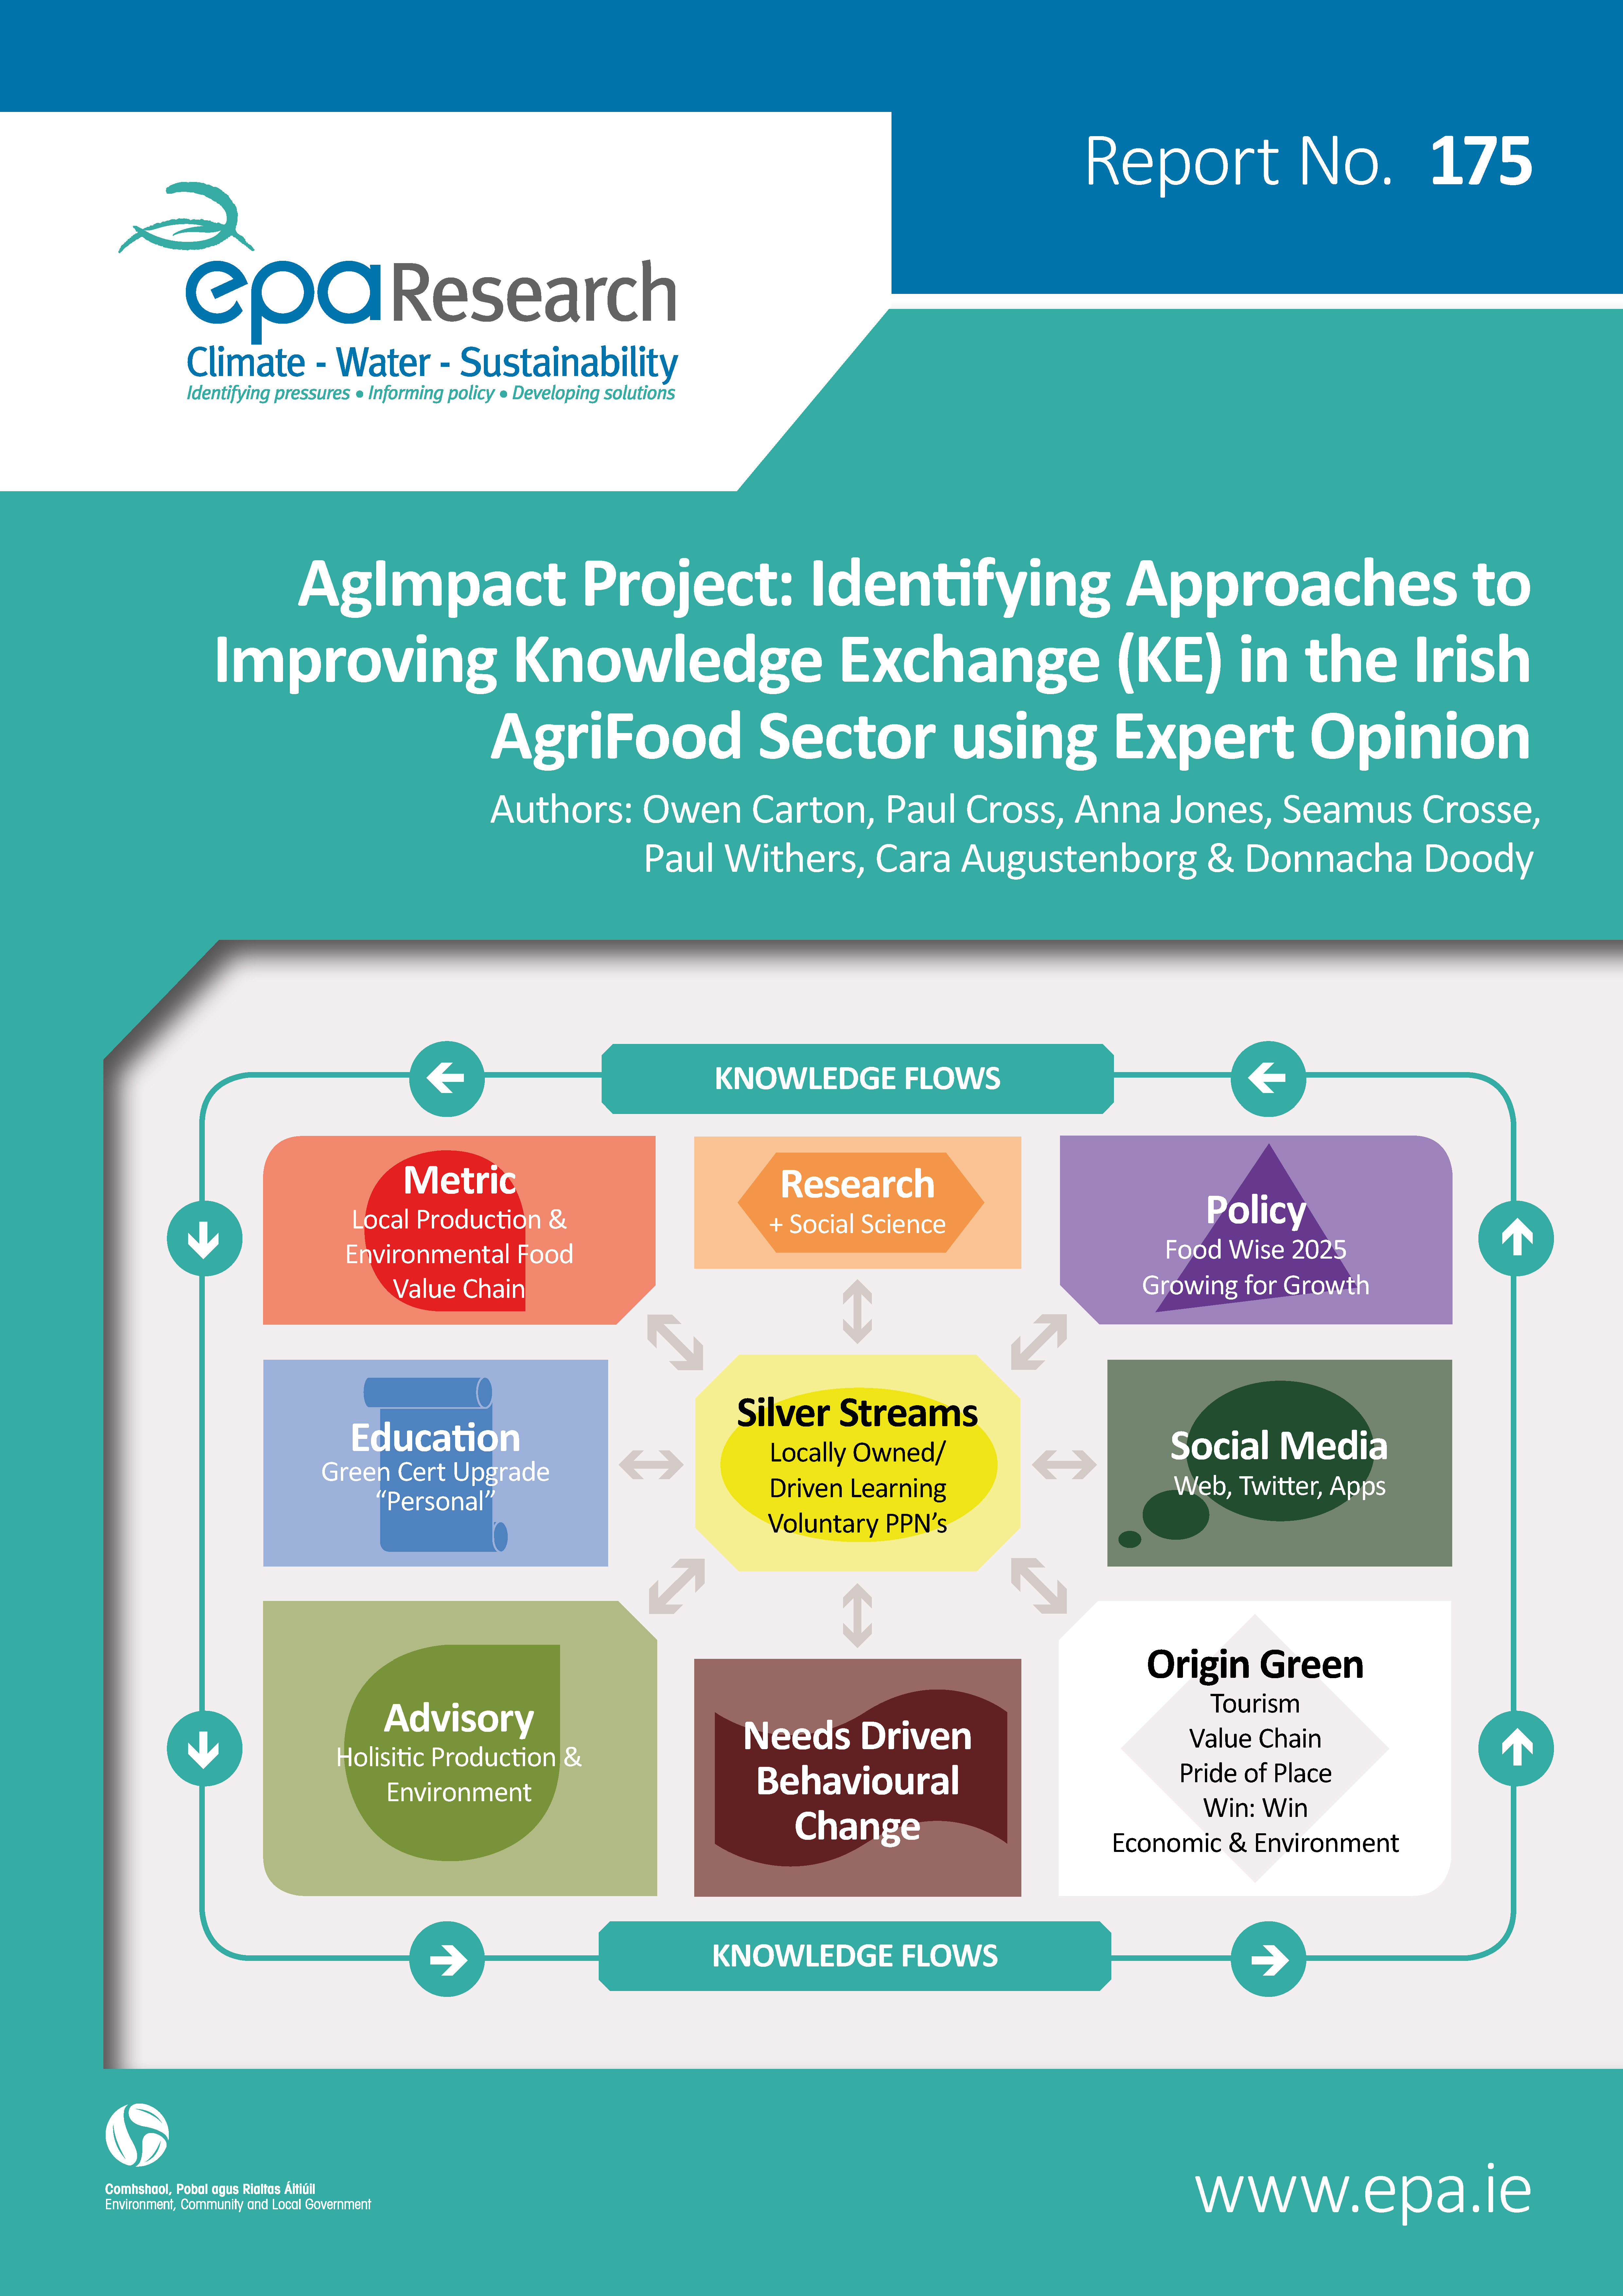 Cover of EPA Research Report 175 on Knowledge Transfer in the agricultural and food sector.